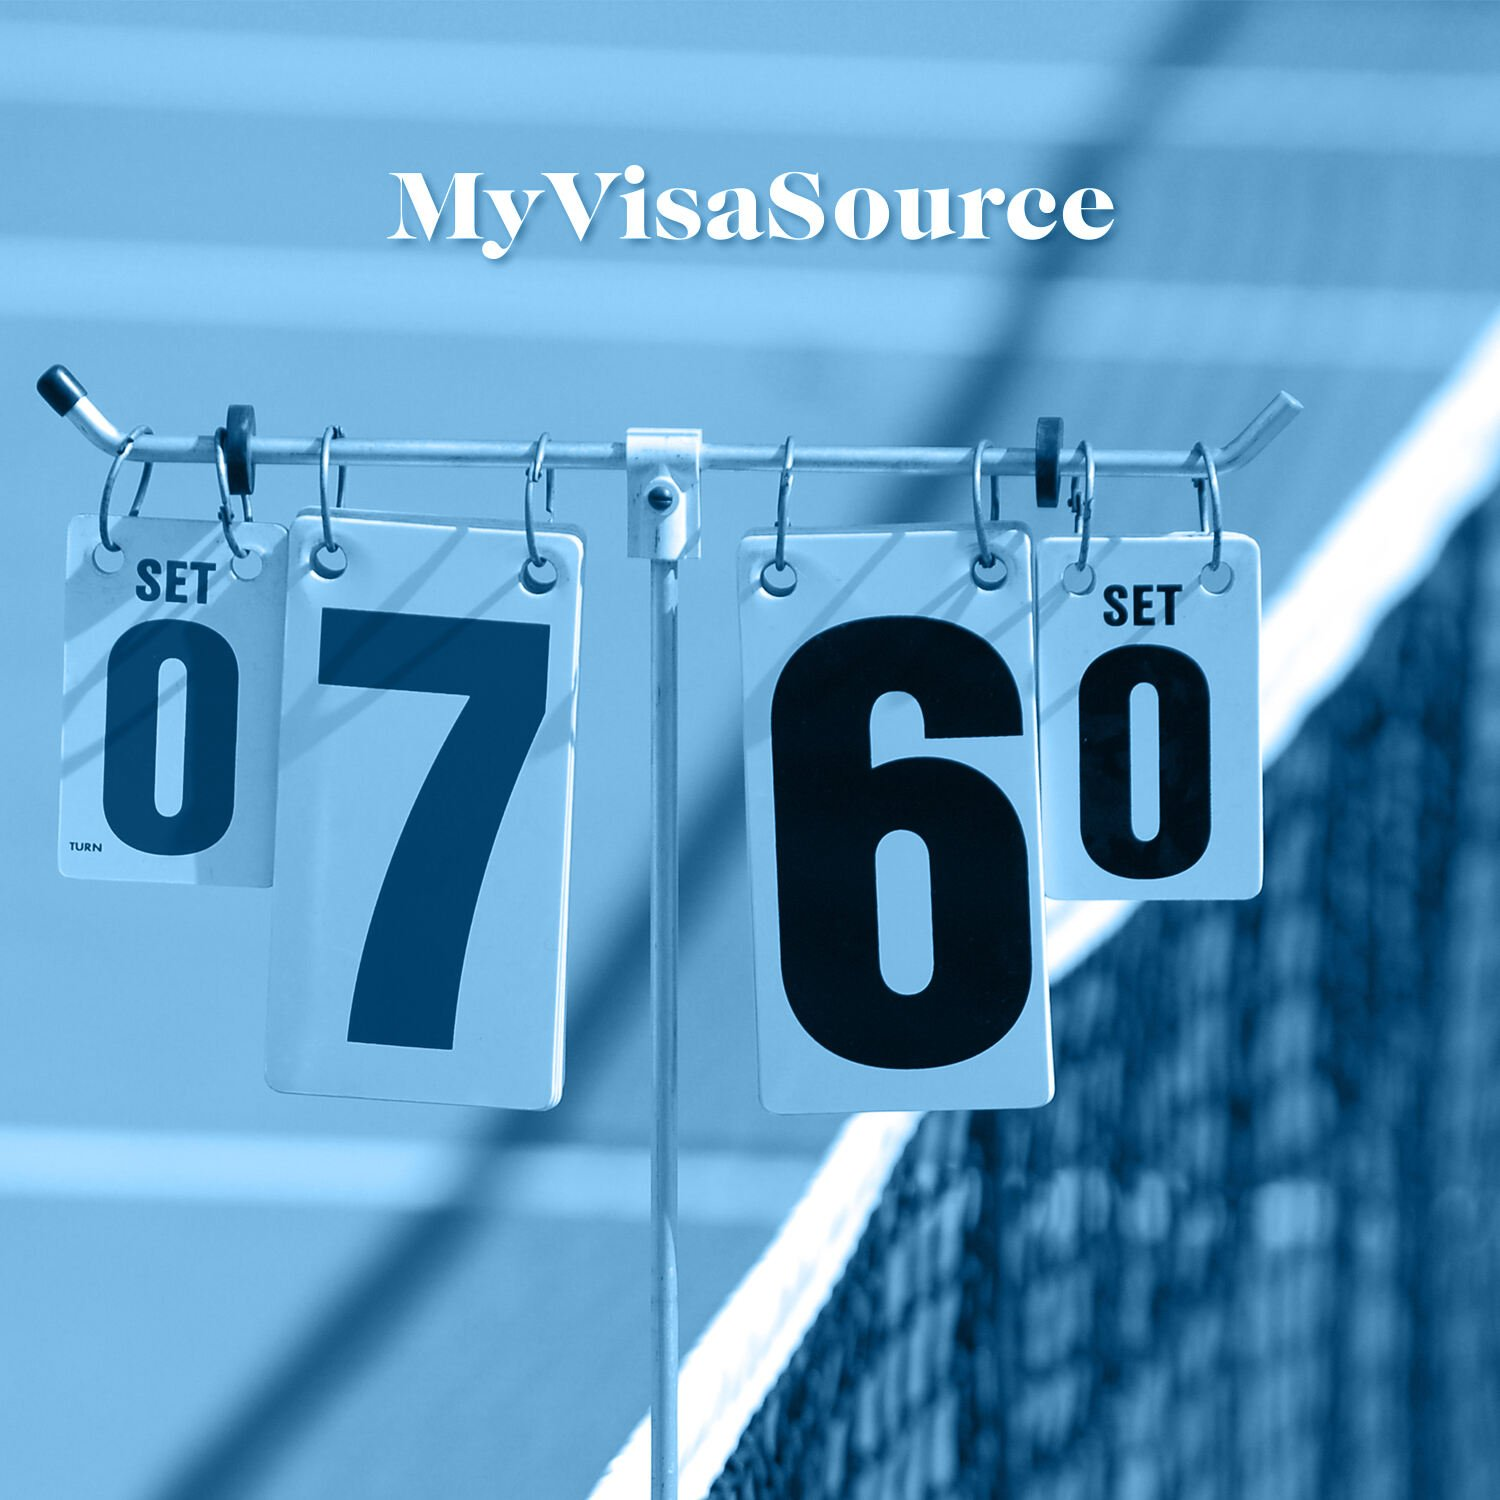 score-card-at-tennis-game-with-tiebreaker-win-my-visa-source